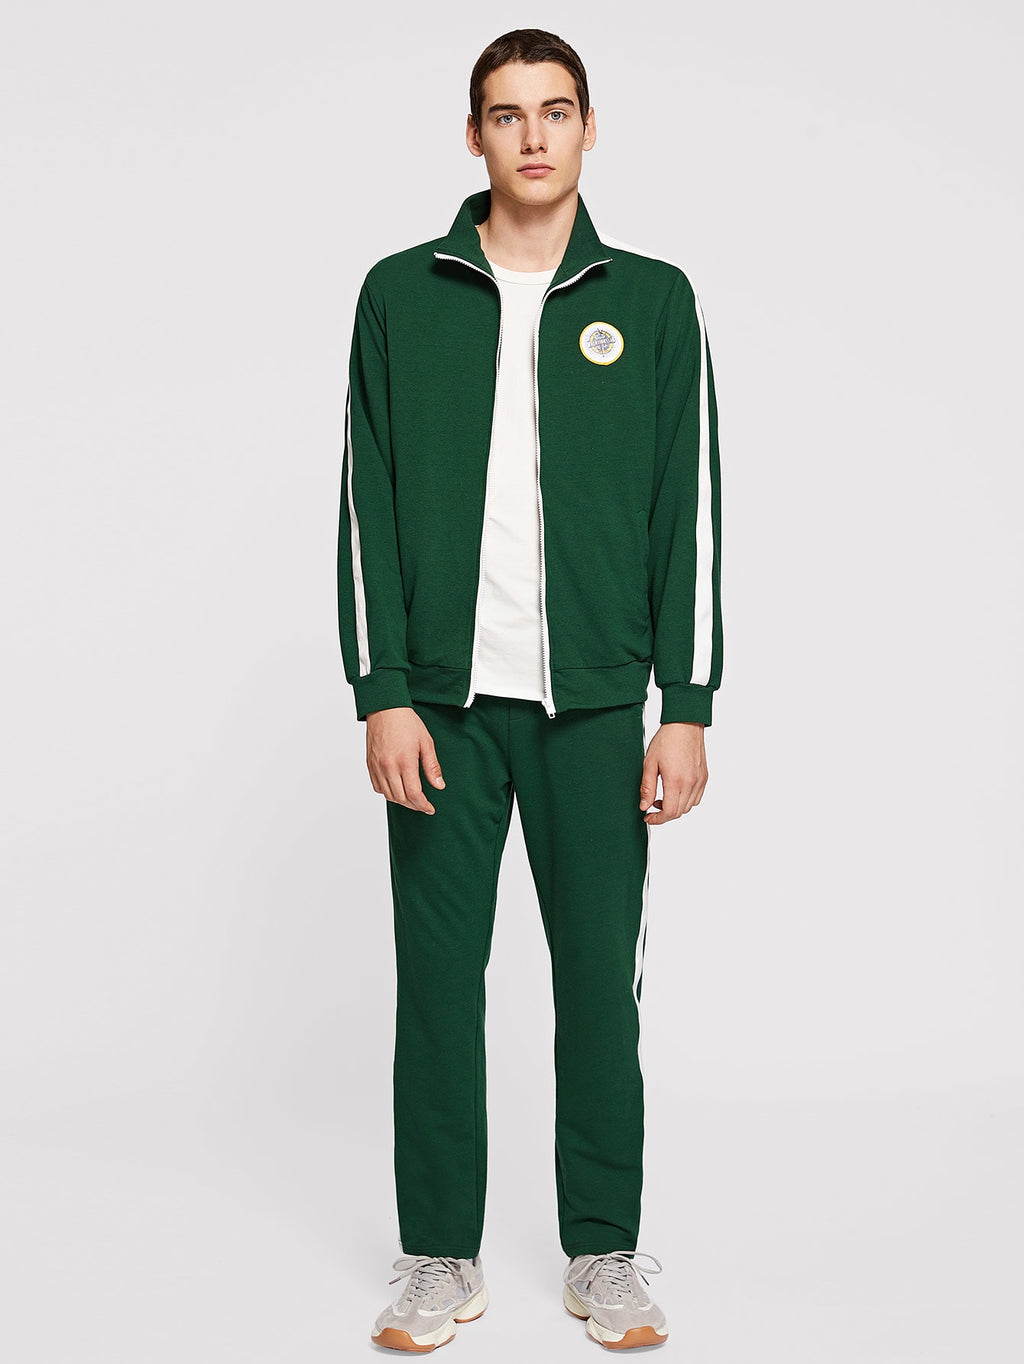 Men's Tracksuit - Zip Up Mock-Neck Jacket & Pants Set